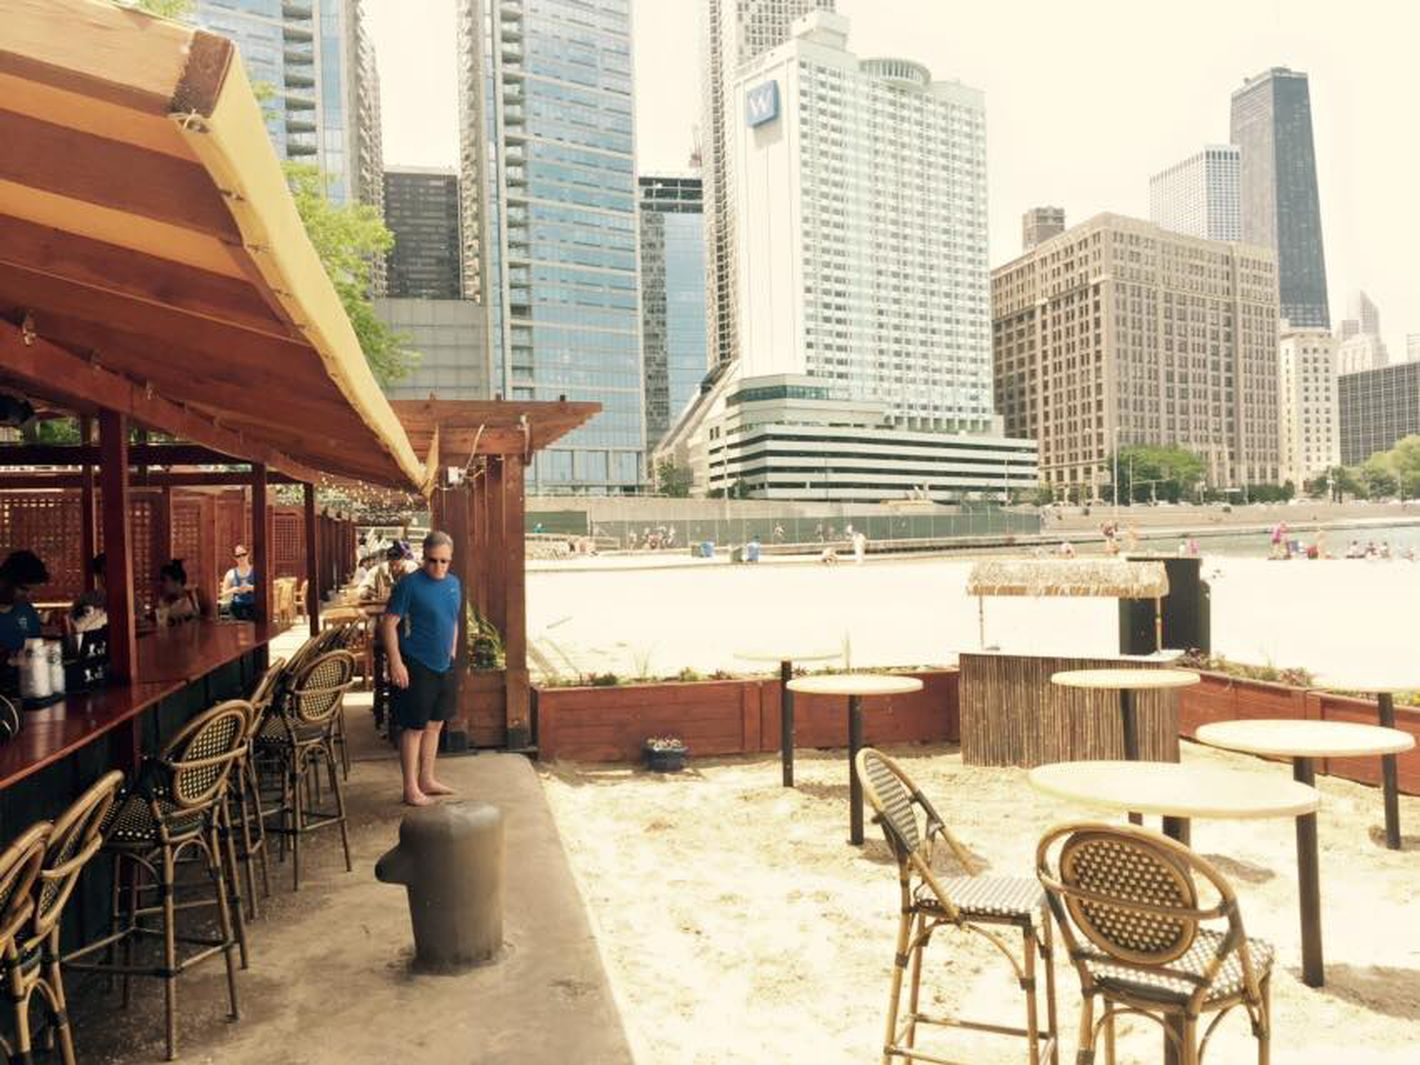 15 Chicago Restaurants With Top Views Of The Windy City Caffe Oliva Seasonal Beachfront Spot On Ohio Street Beach S Lakefront Are Nearly